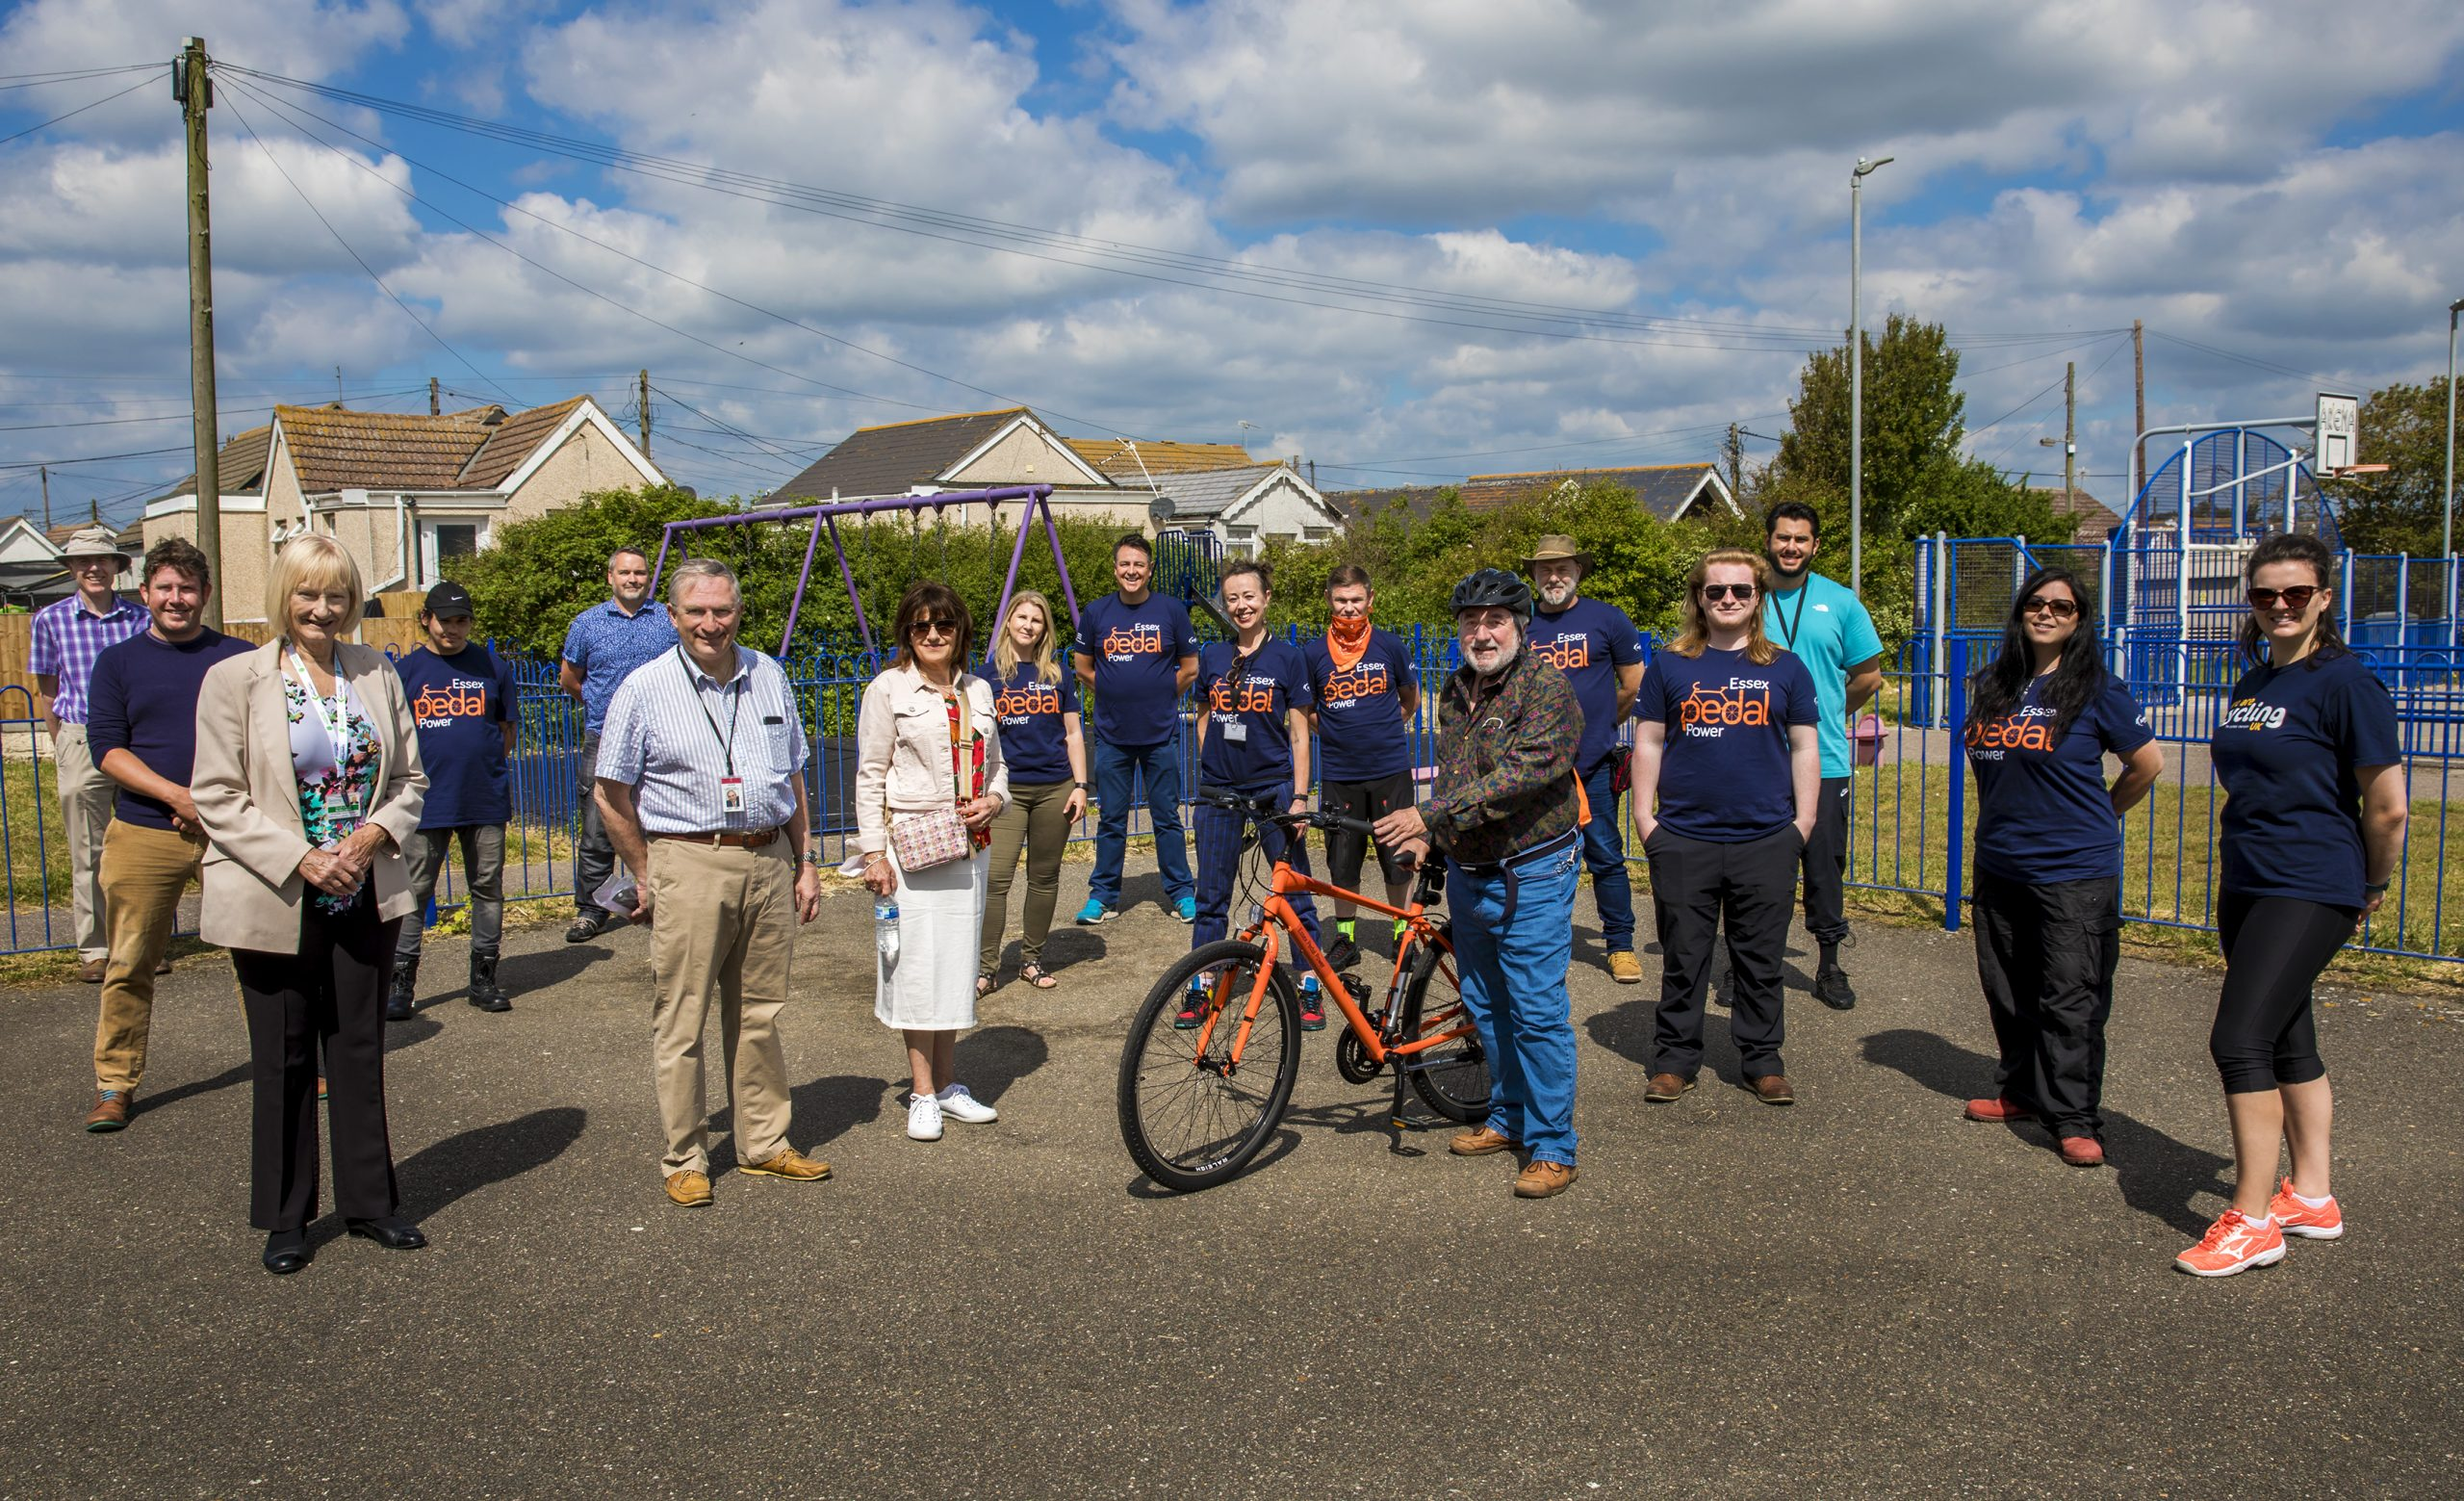 Group of people holding bikes in a park at the launch event